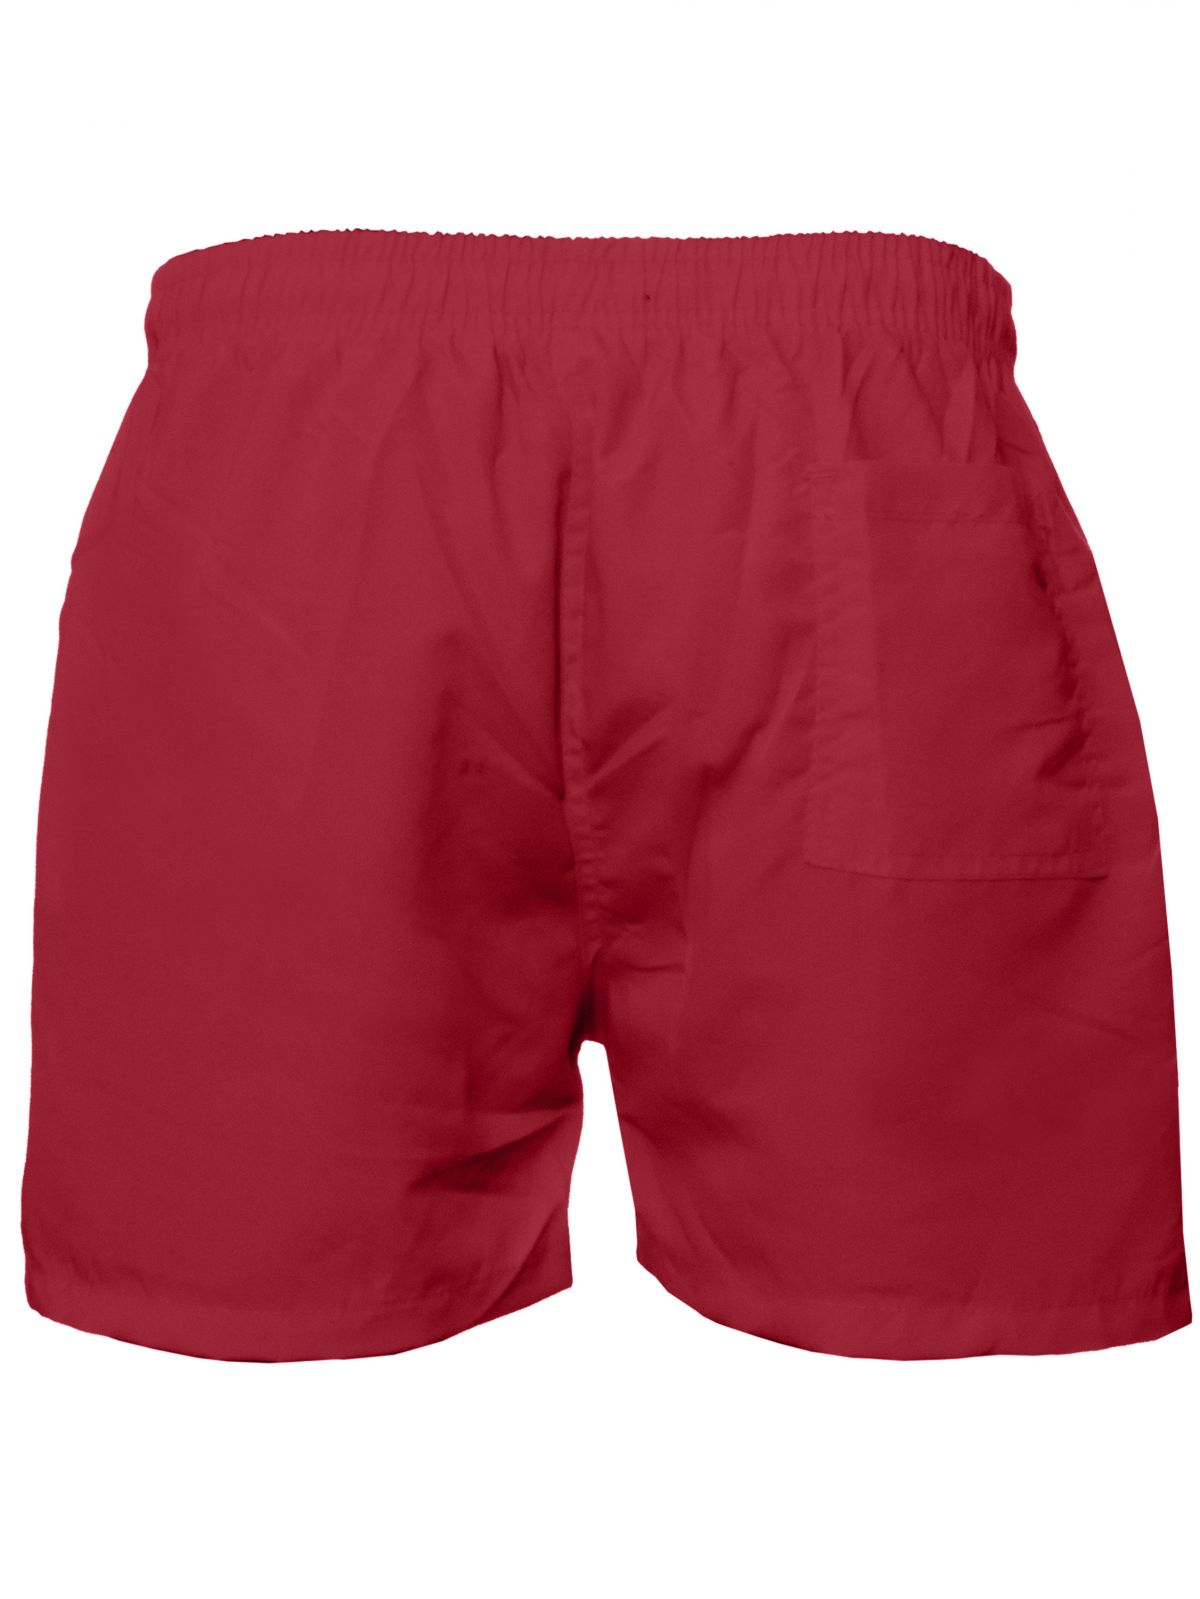 Clearance | Mens Board Trunks Swimming Shorts